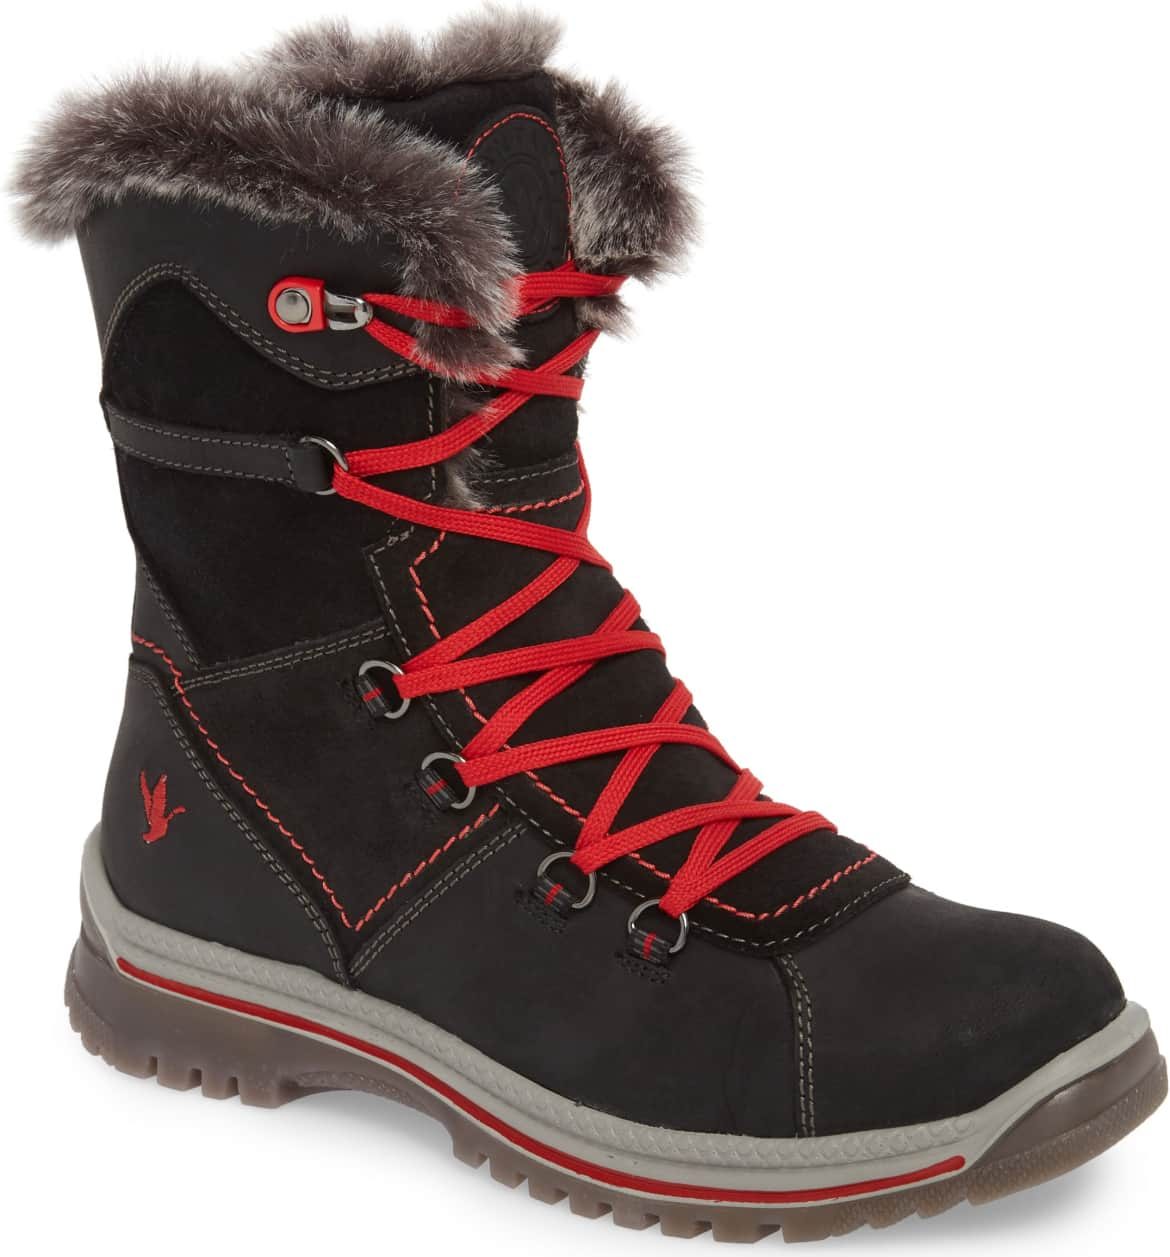 <p>A plush faux-fur lining provides sumptuous comfort and warmth in a lightweight, waterproof leather boot that looks stylish on the slopes.{&nbsp;} Pair with a red jacket and red lips. $238.95 (Image: Nordstrom){&nbsp;}</p><p></p>